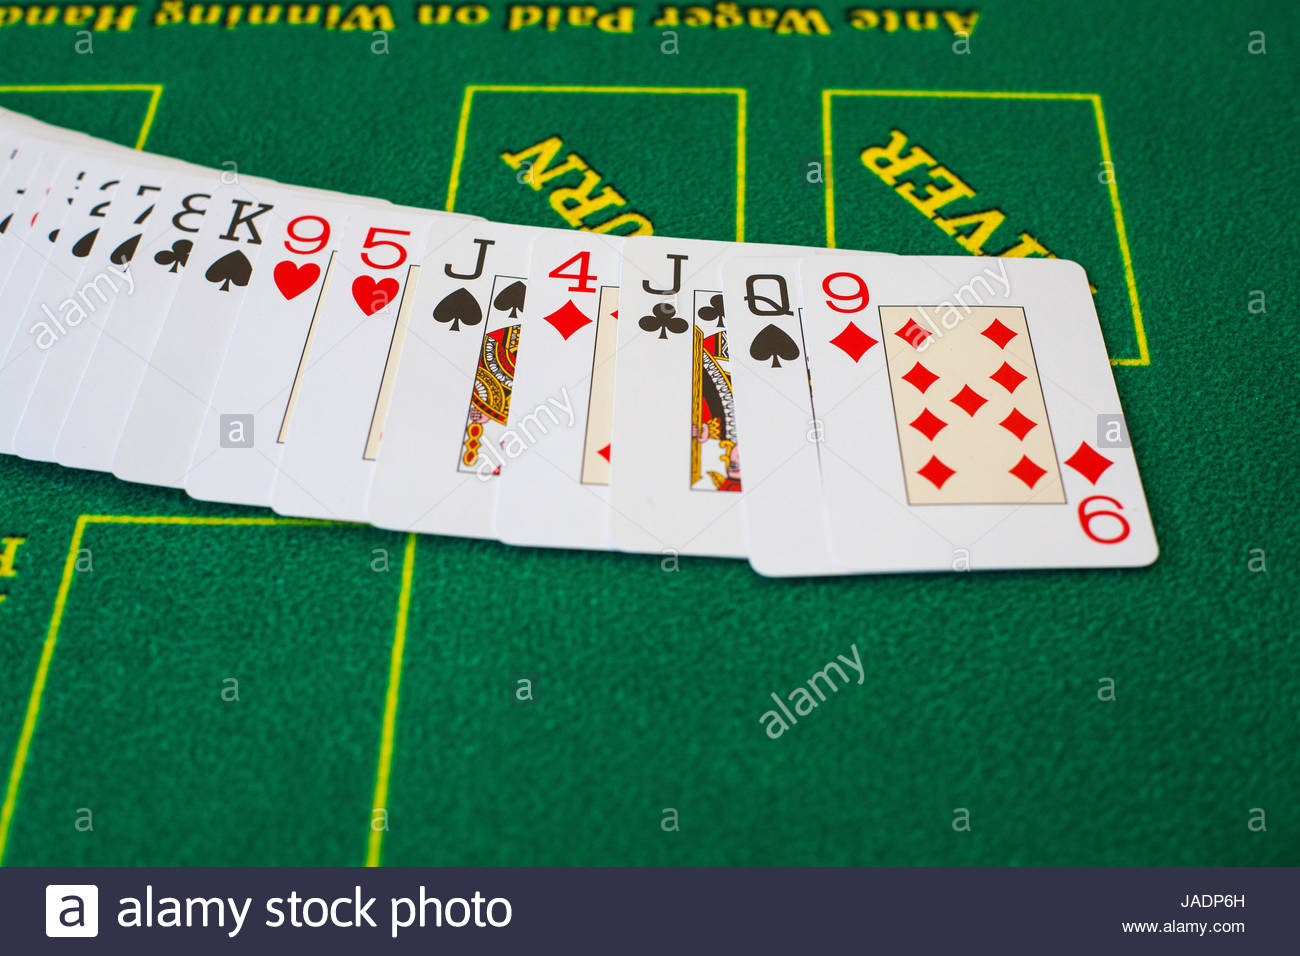 French cards for Texas hold 'em ion casino table - Stock Image